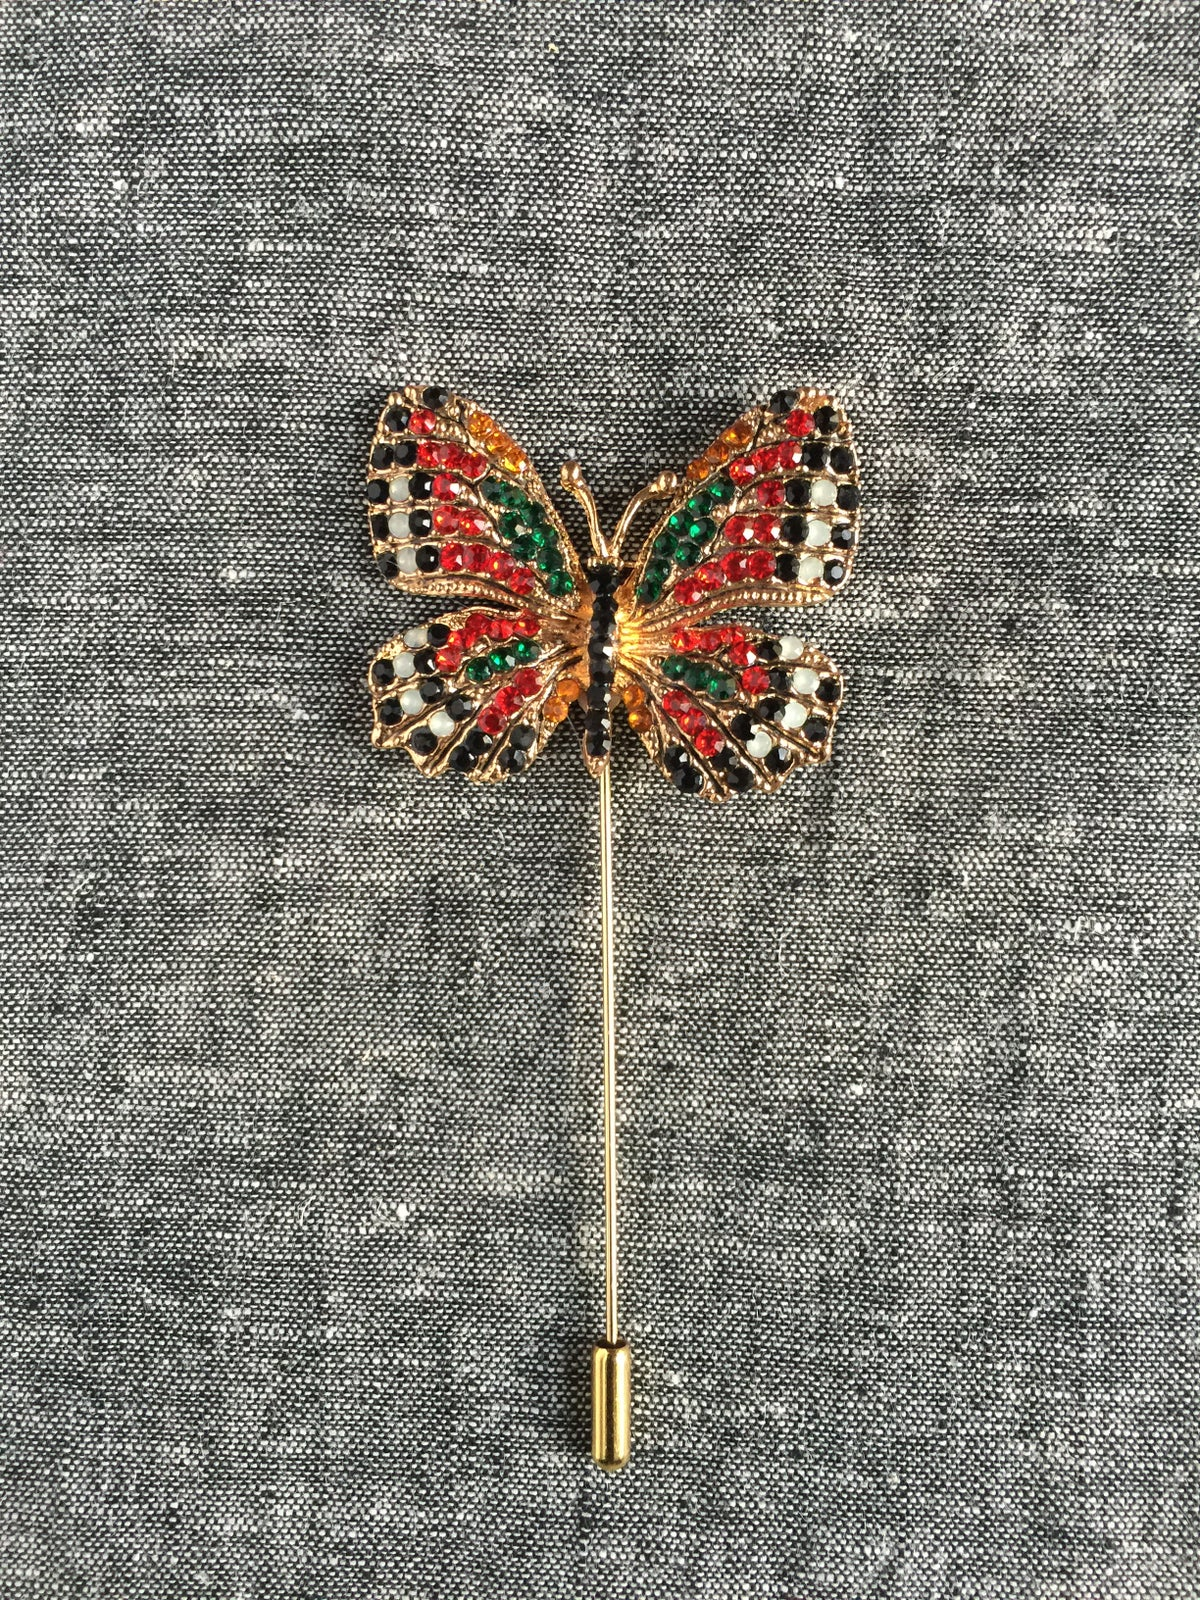 Image of Butterfly Lapel Pin (Black/White/Cherry)